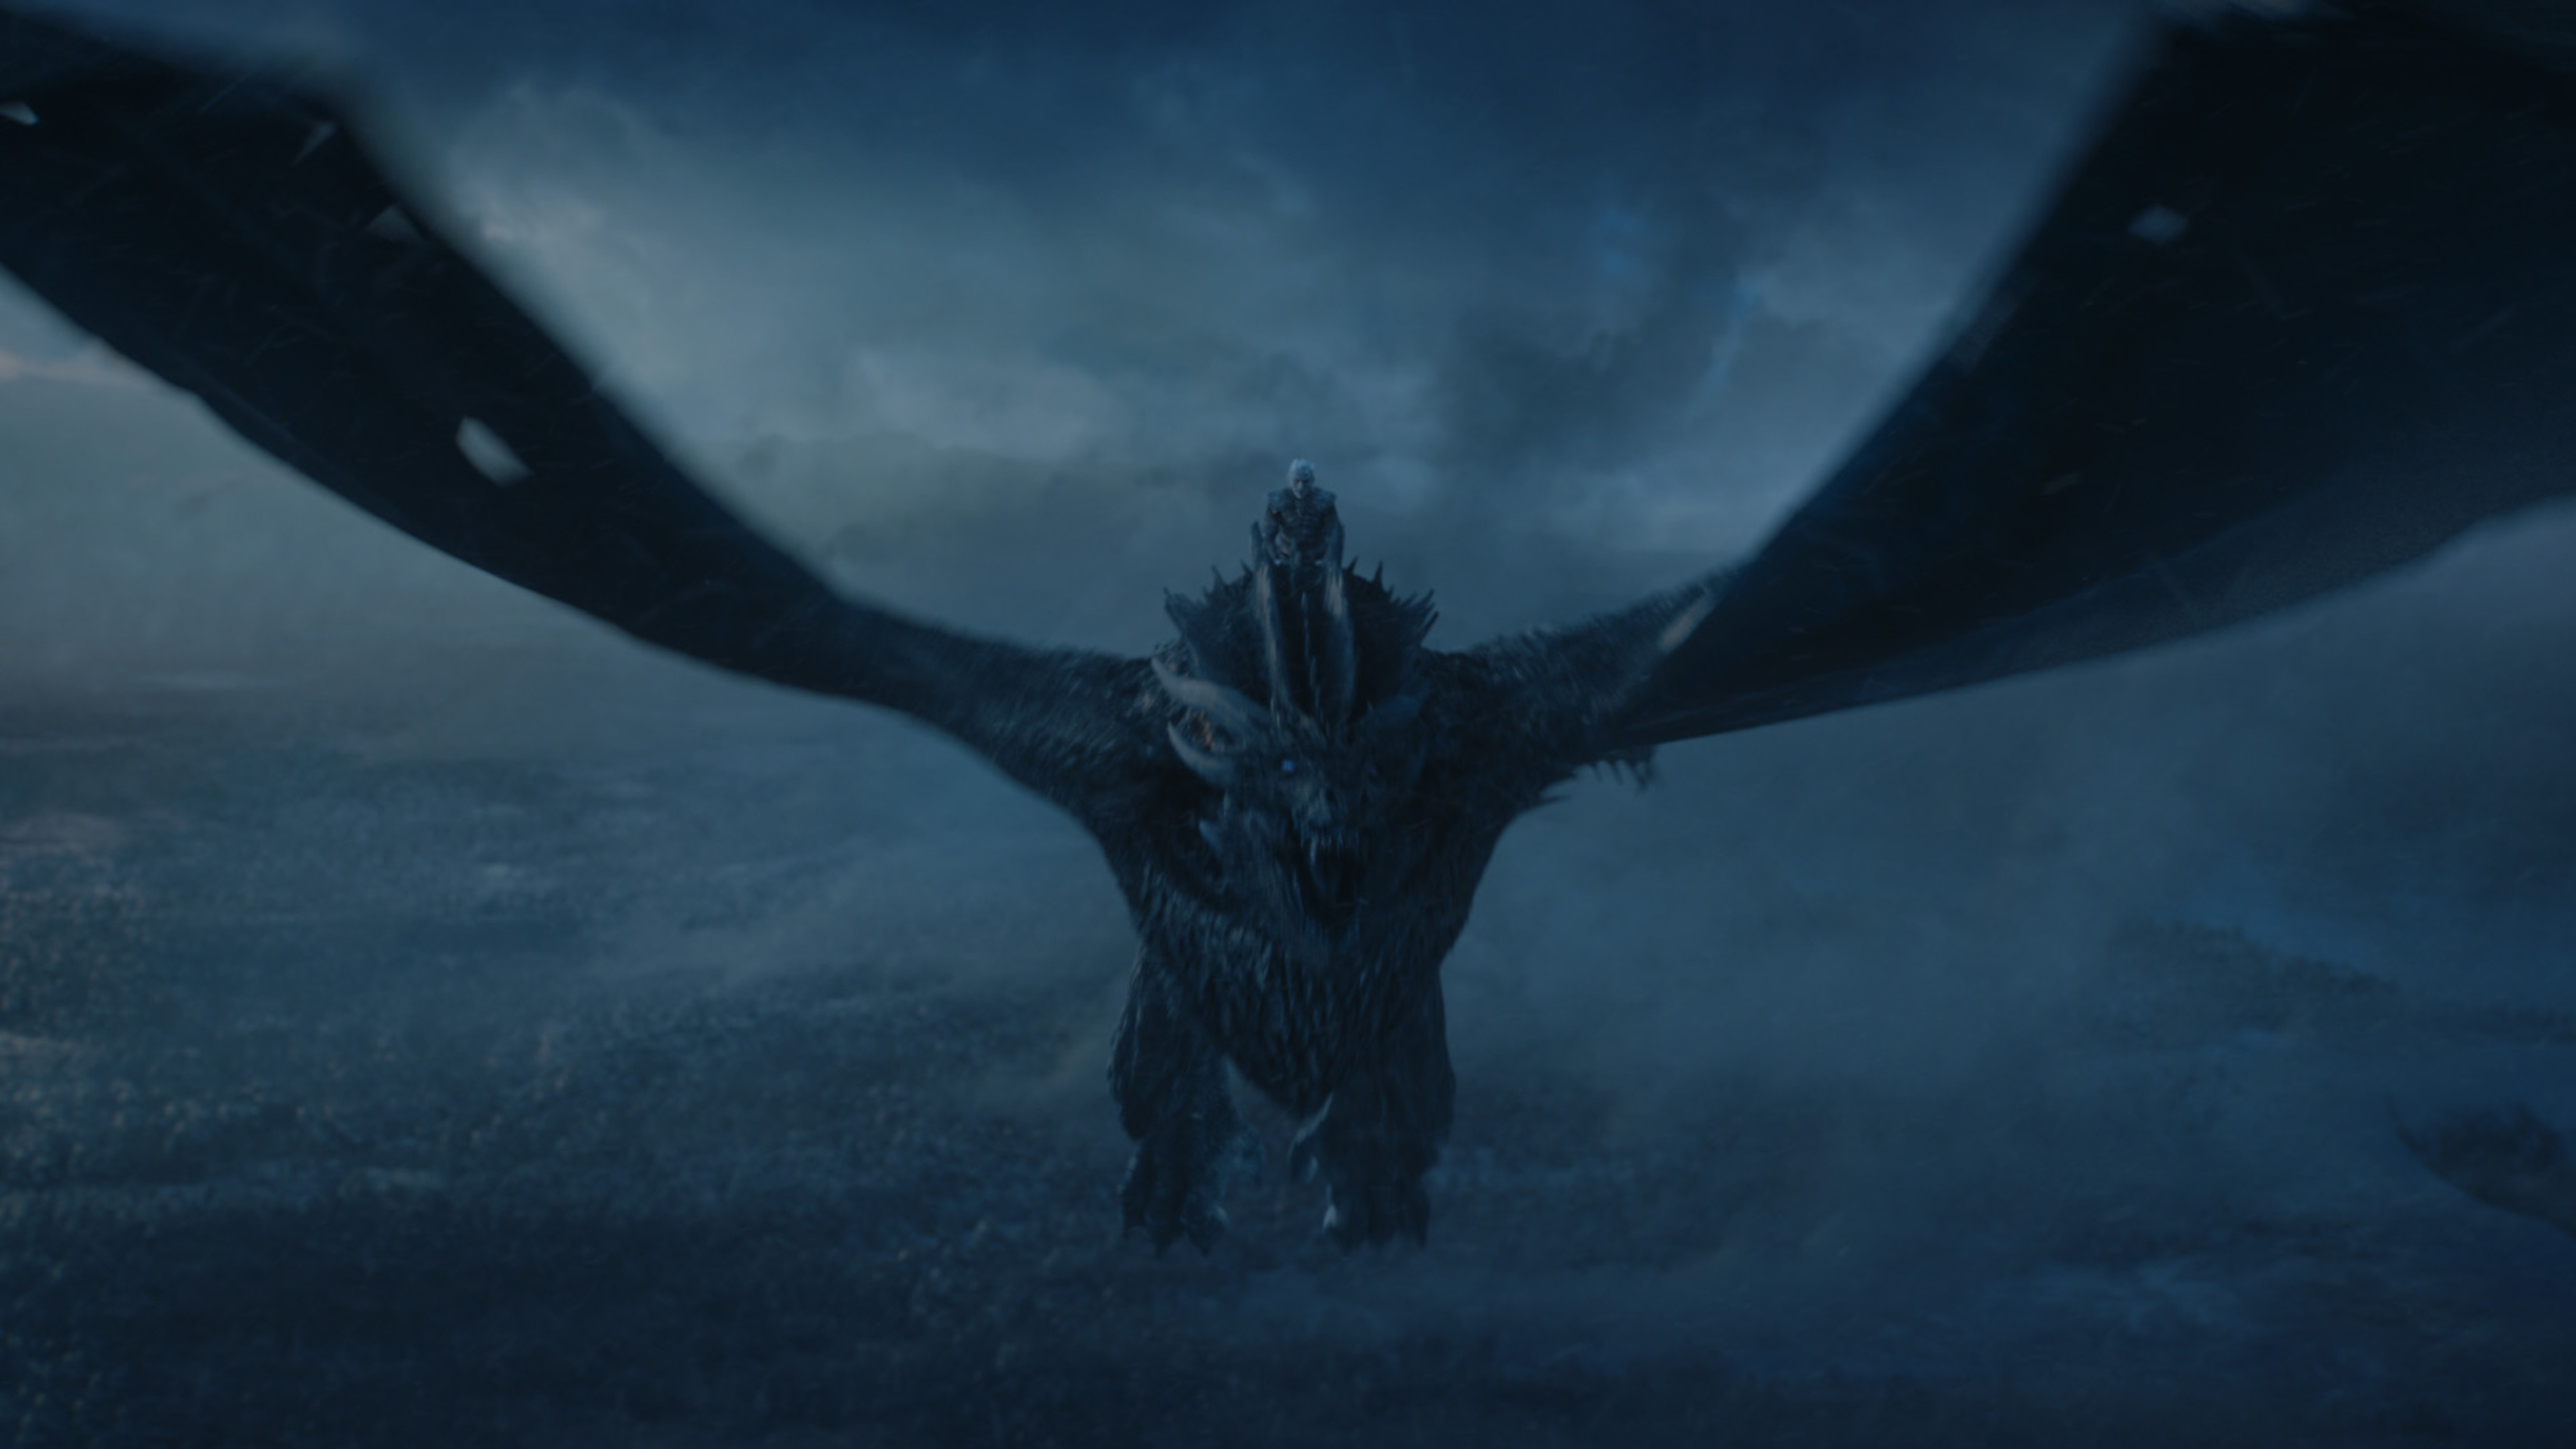 Game Of Thrones Wallpaper 4k Mobile Gaphotoworks Free Photo And